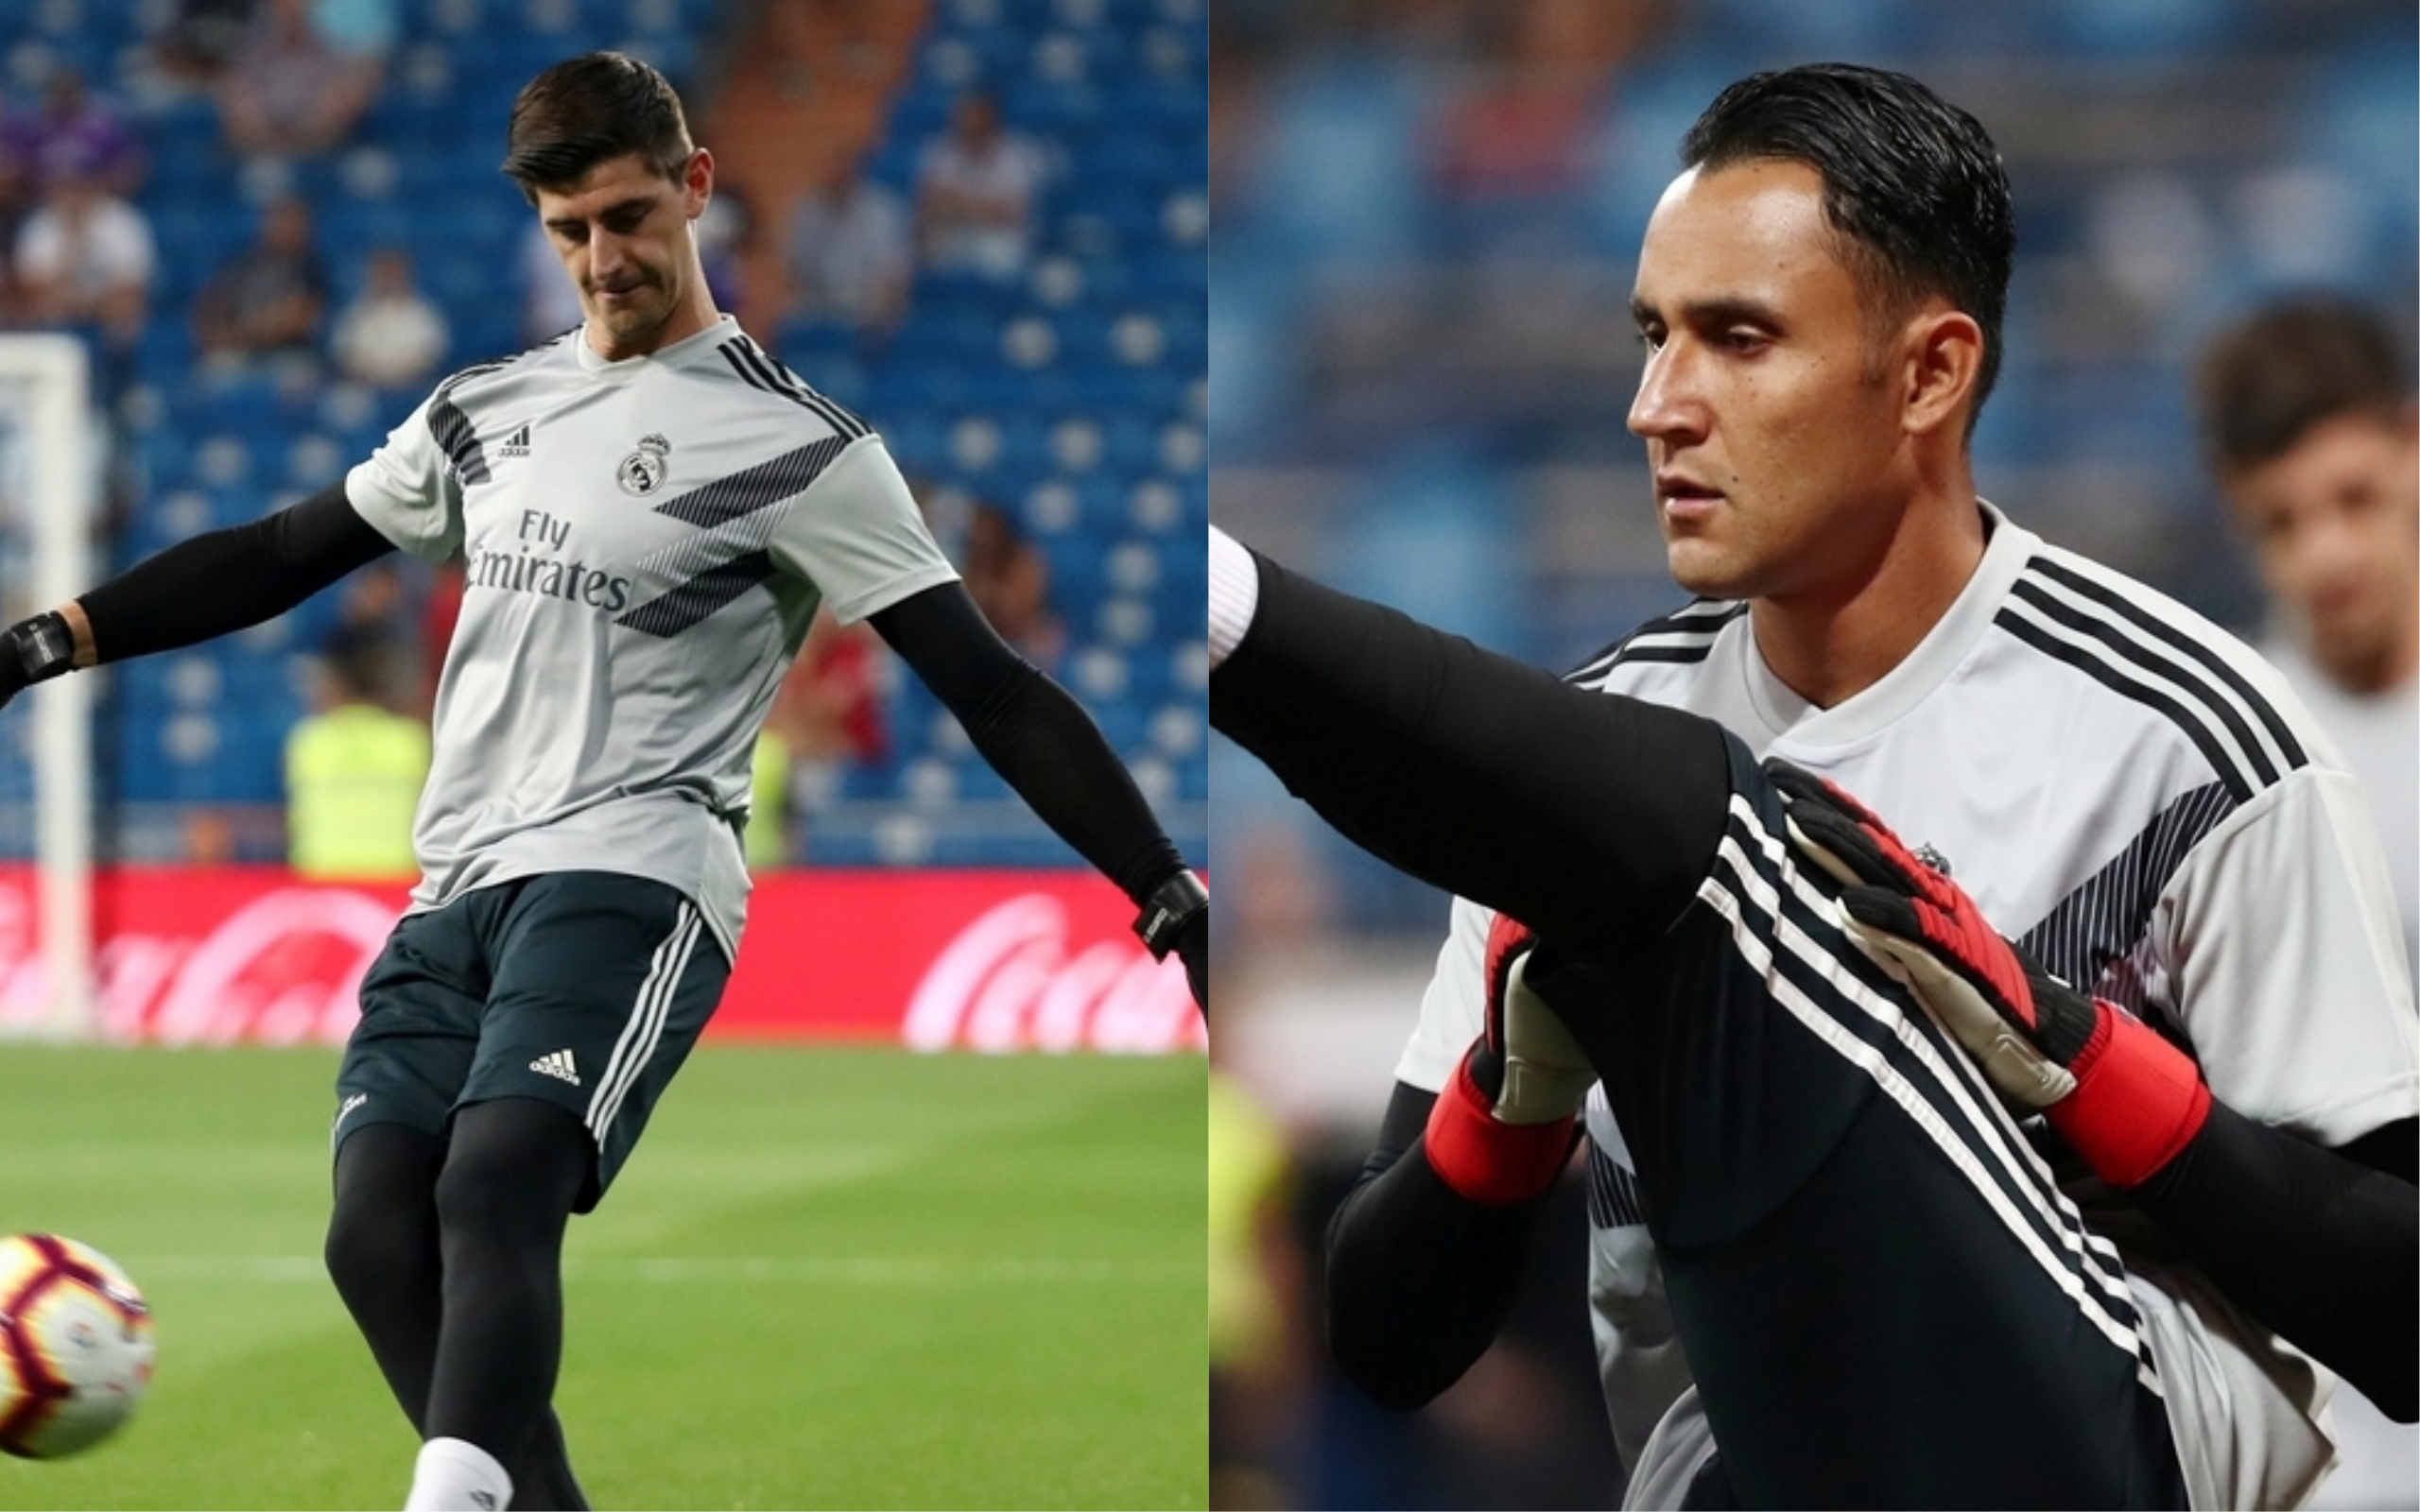 Opinion: Navas And Courtois Will Be A Problem For Madrid